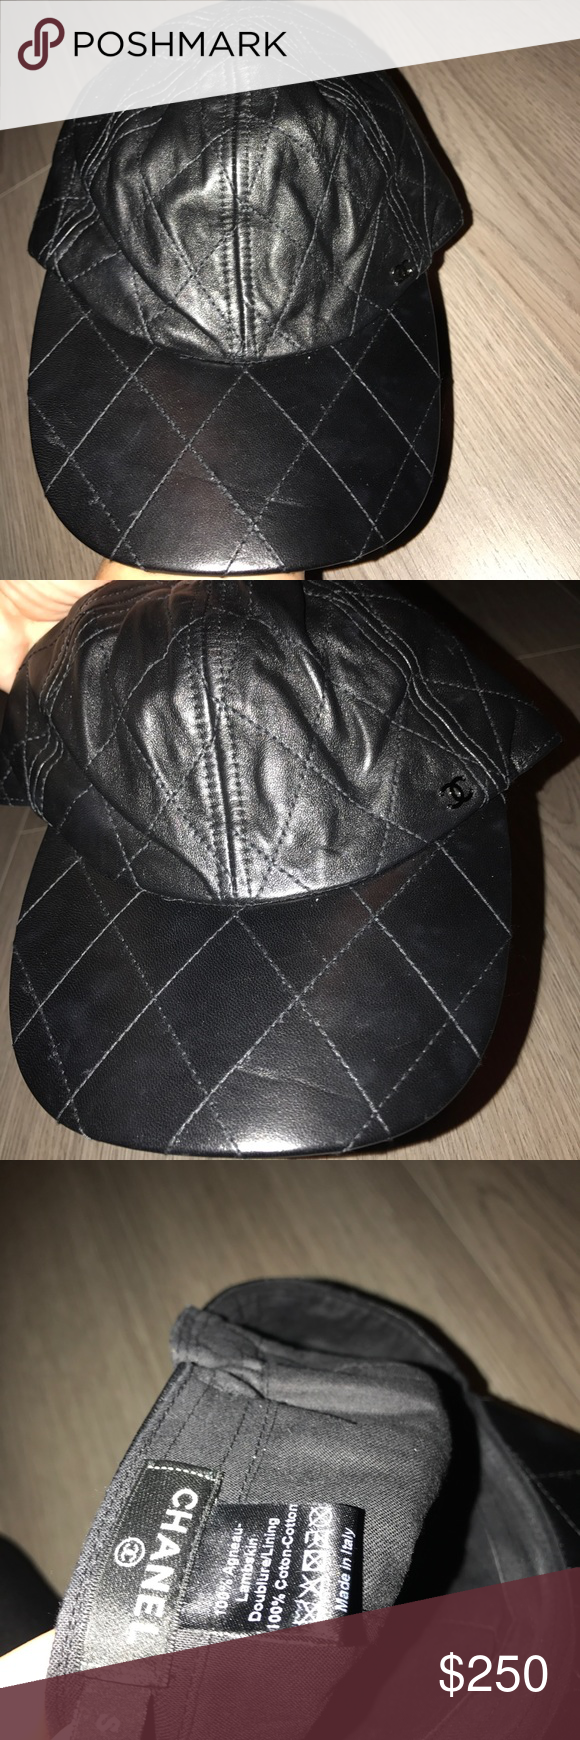 Chanel leather quilted hat authentic 100% auth Chanel all leather ball cap  bought in the Chanel store in Las Vegas will make a great holiday gift size  small ... db2531f6623